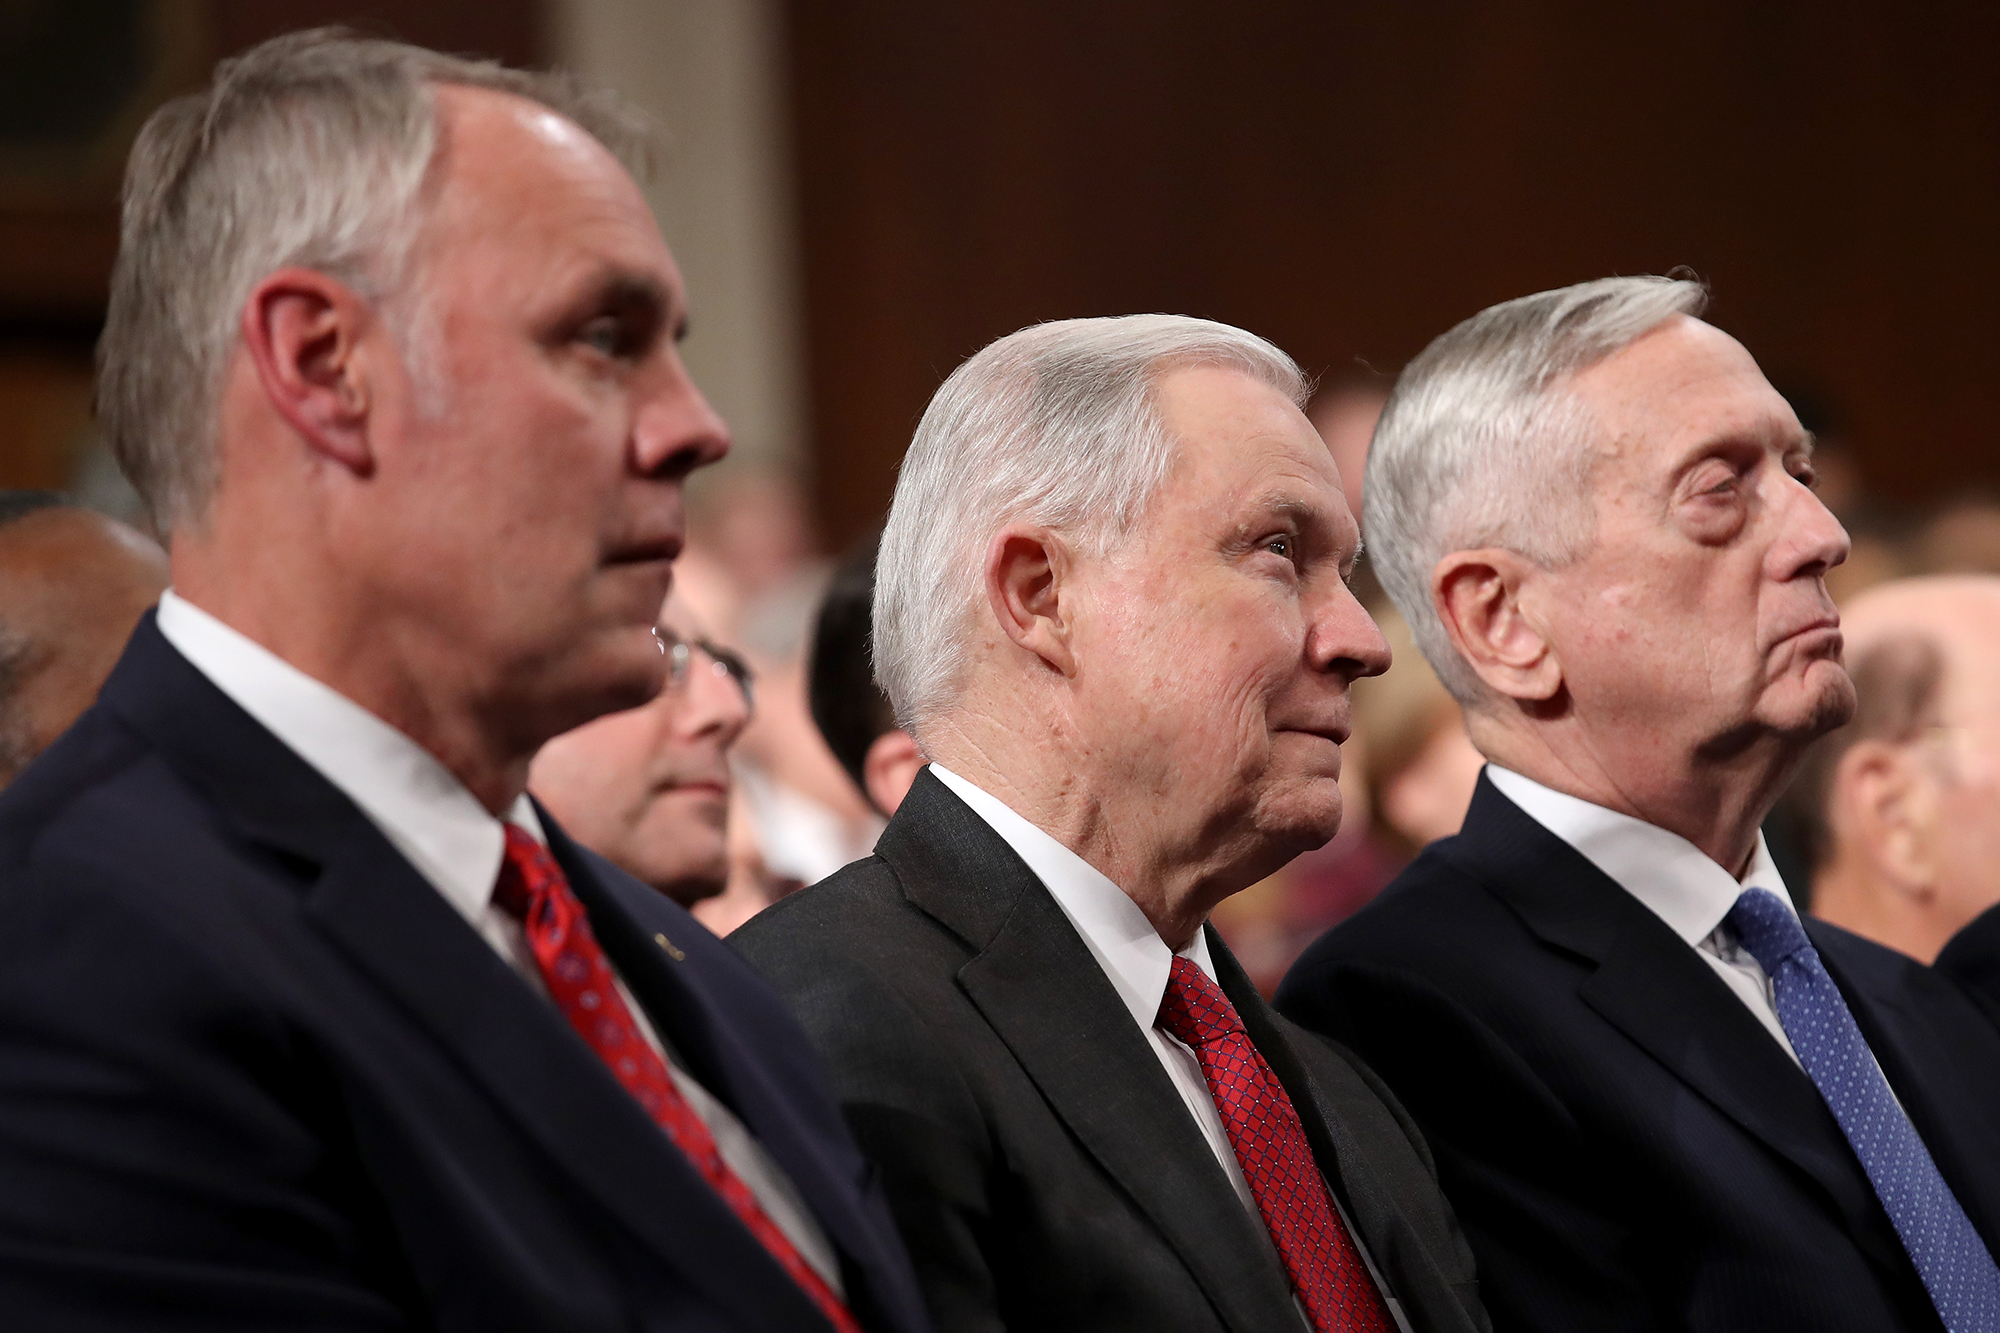 (L-R) Secretary of the Interior Ryan Zinke, US Attoney General Jeff Sessions, and US Secretary of Defense Jim Mattis watch the State of the Union address in the chamber of the US House of Representatives in Washington, DC, USA, 30 January 2018. This is the first State of the Union address given by US President Donald J. Trump and his second joint-session address to Congress.US President Donald J. Trump delivers his State of the Union to Congress, Washington, USA - 30 Jan 2018